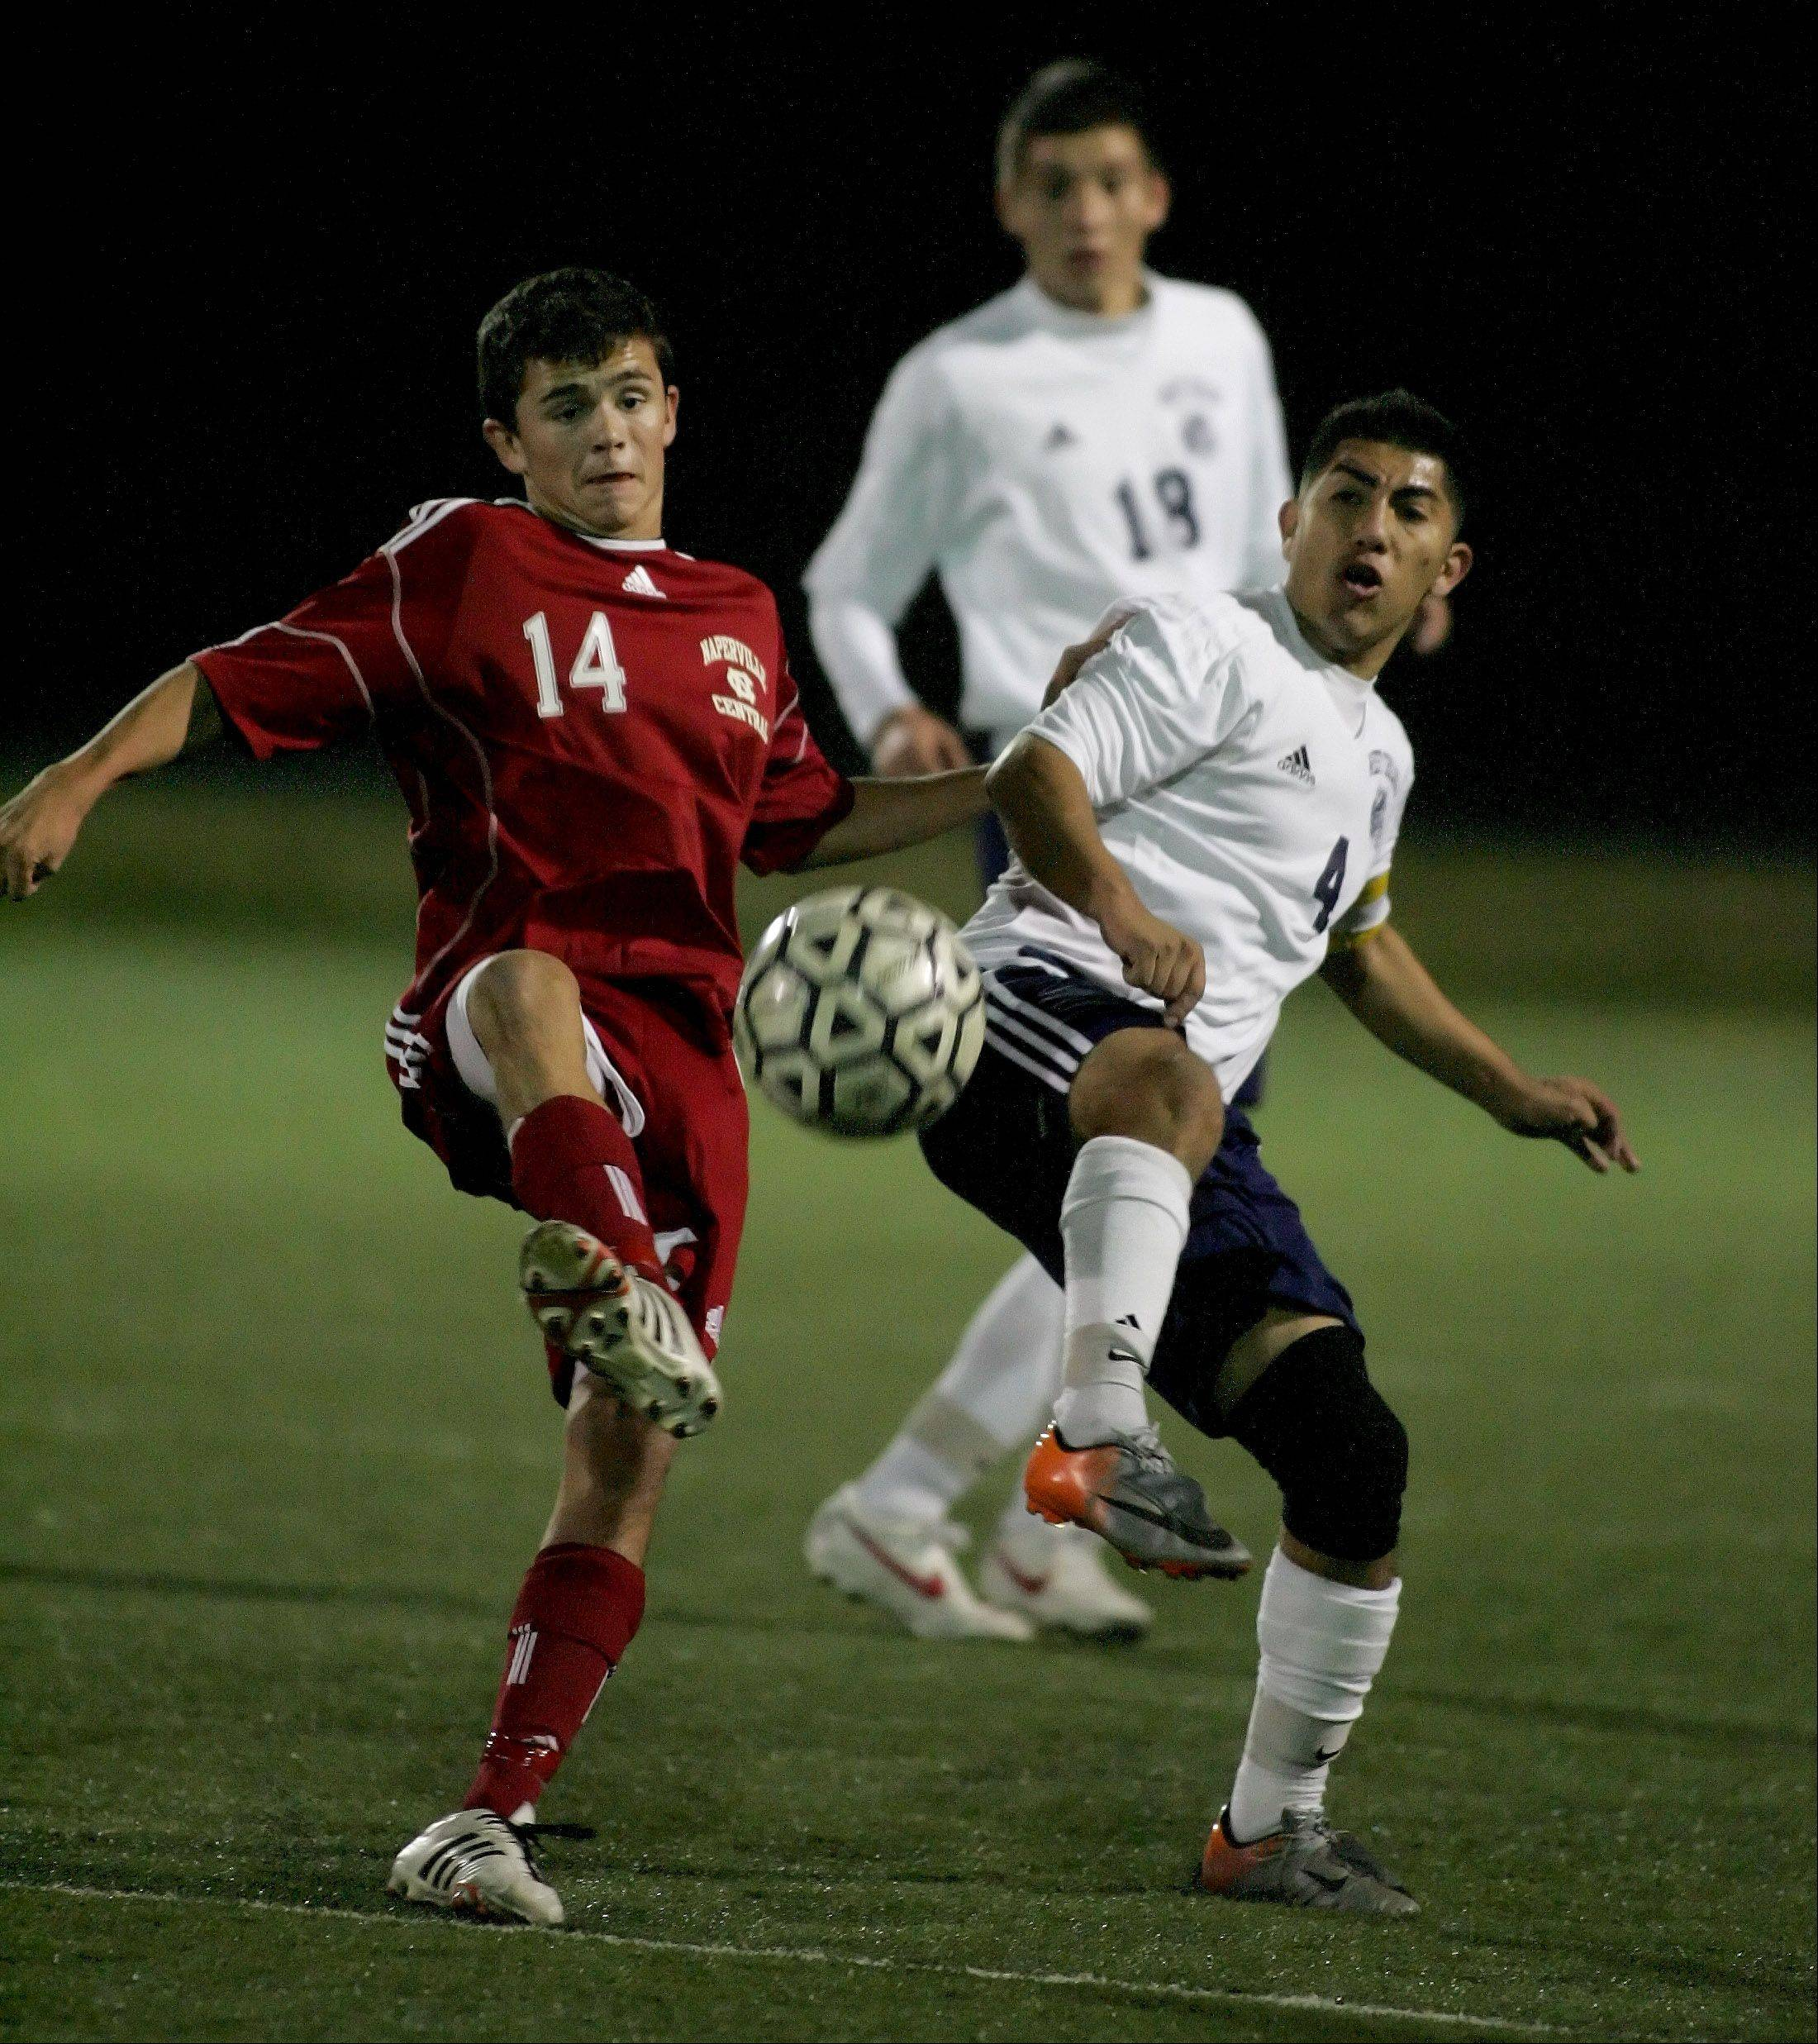 David Murphy, left, of Naperville Central and Daniel Hernandez, right, of West Chicago in boys soccer action on Tuesday.